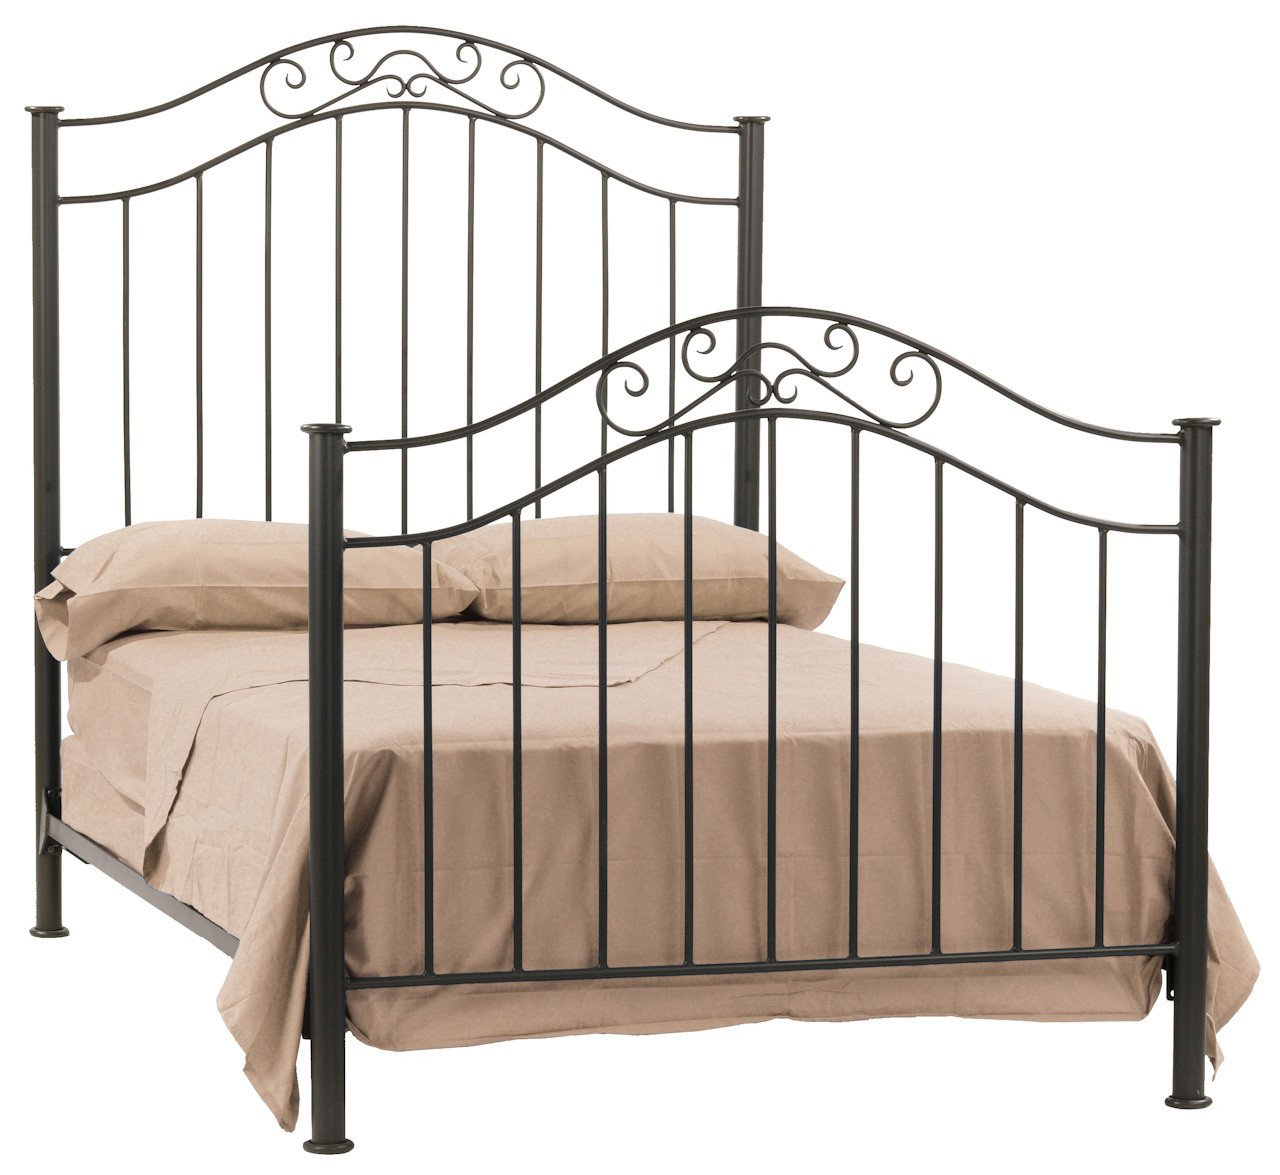 King Bed Richmond 2498 Product Photo